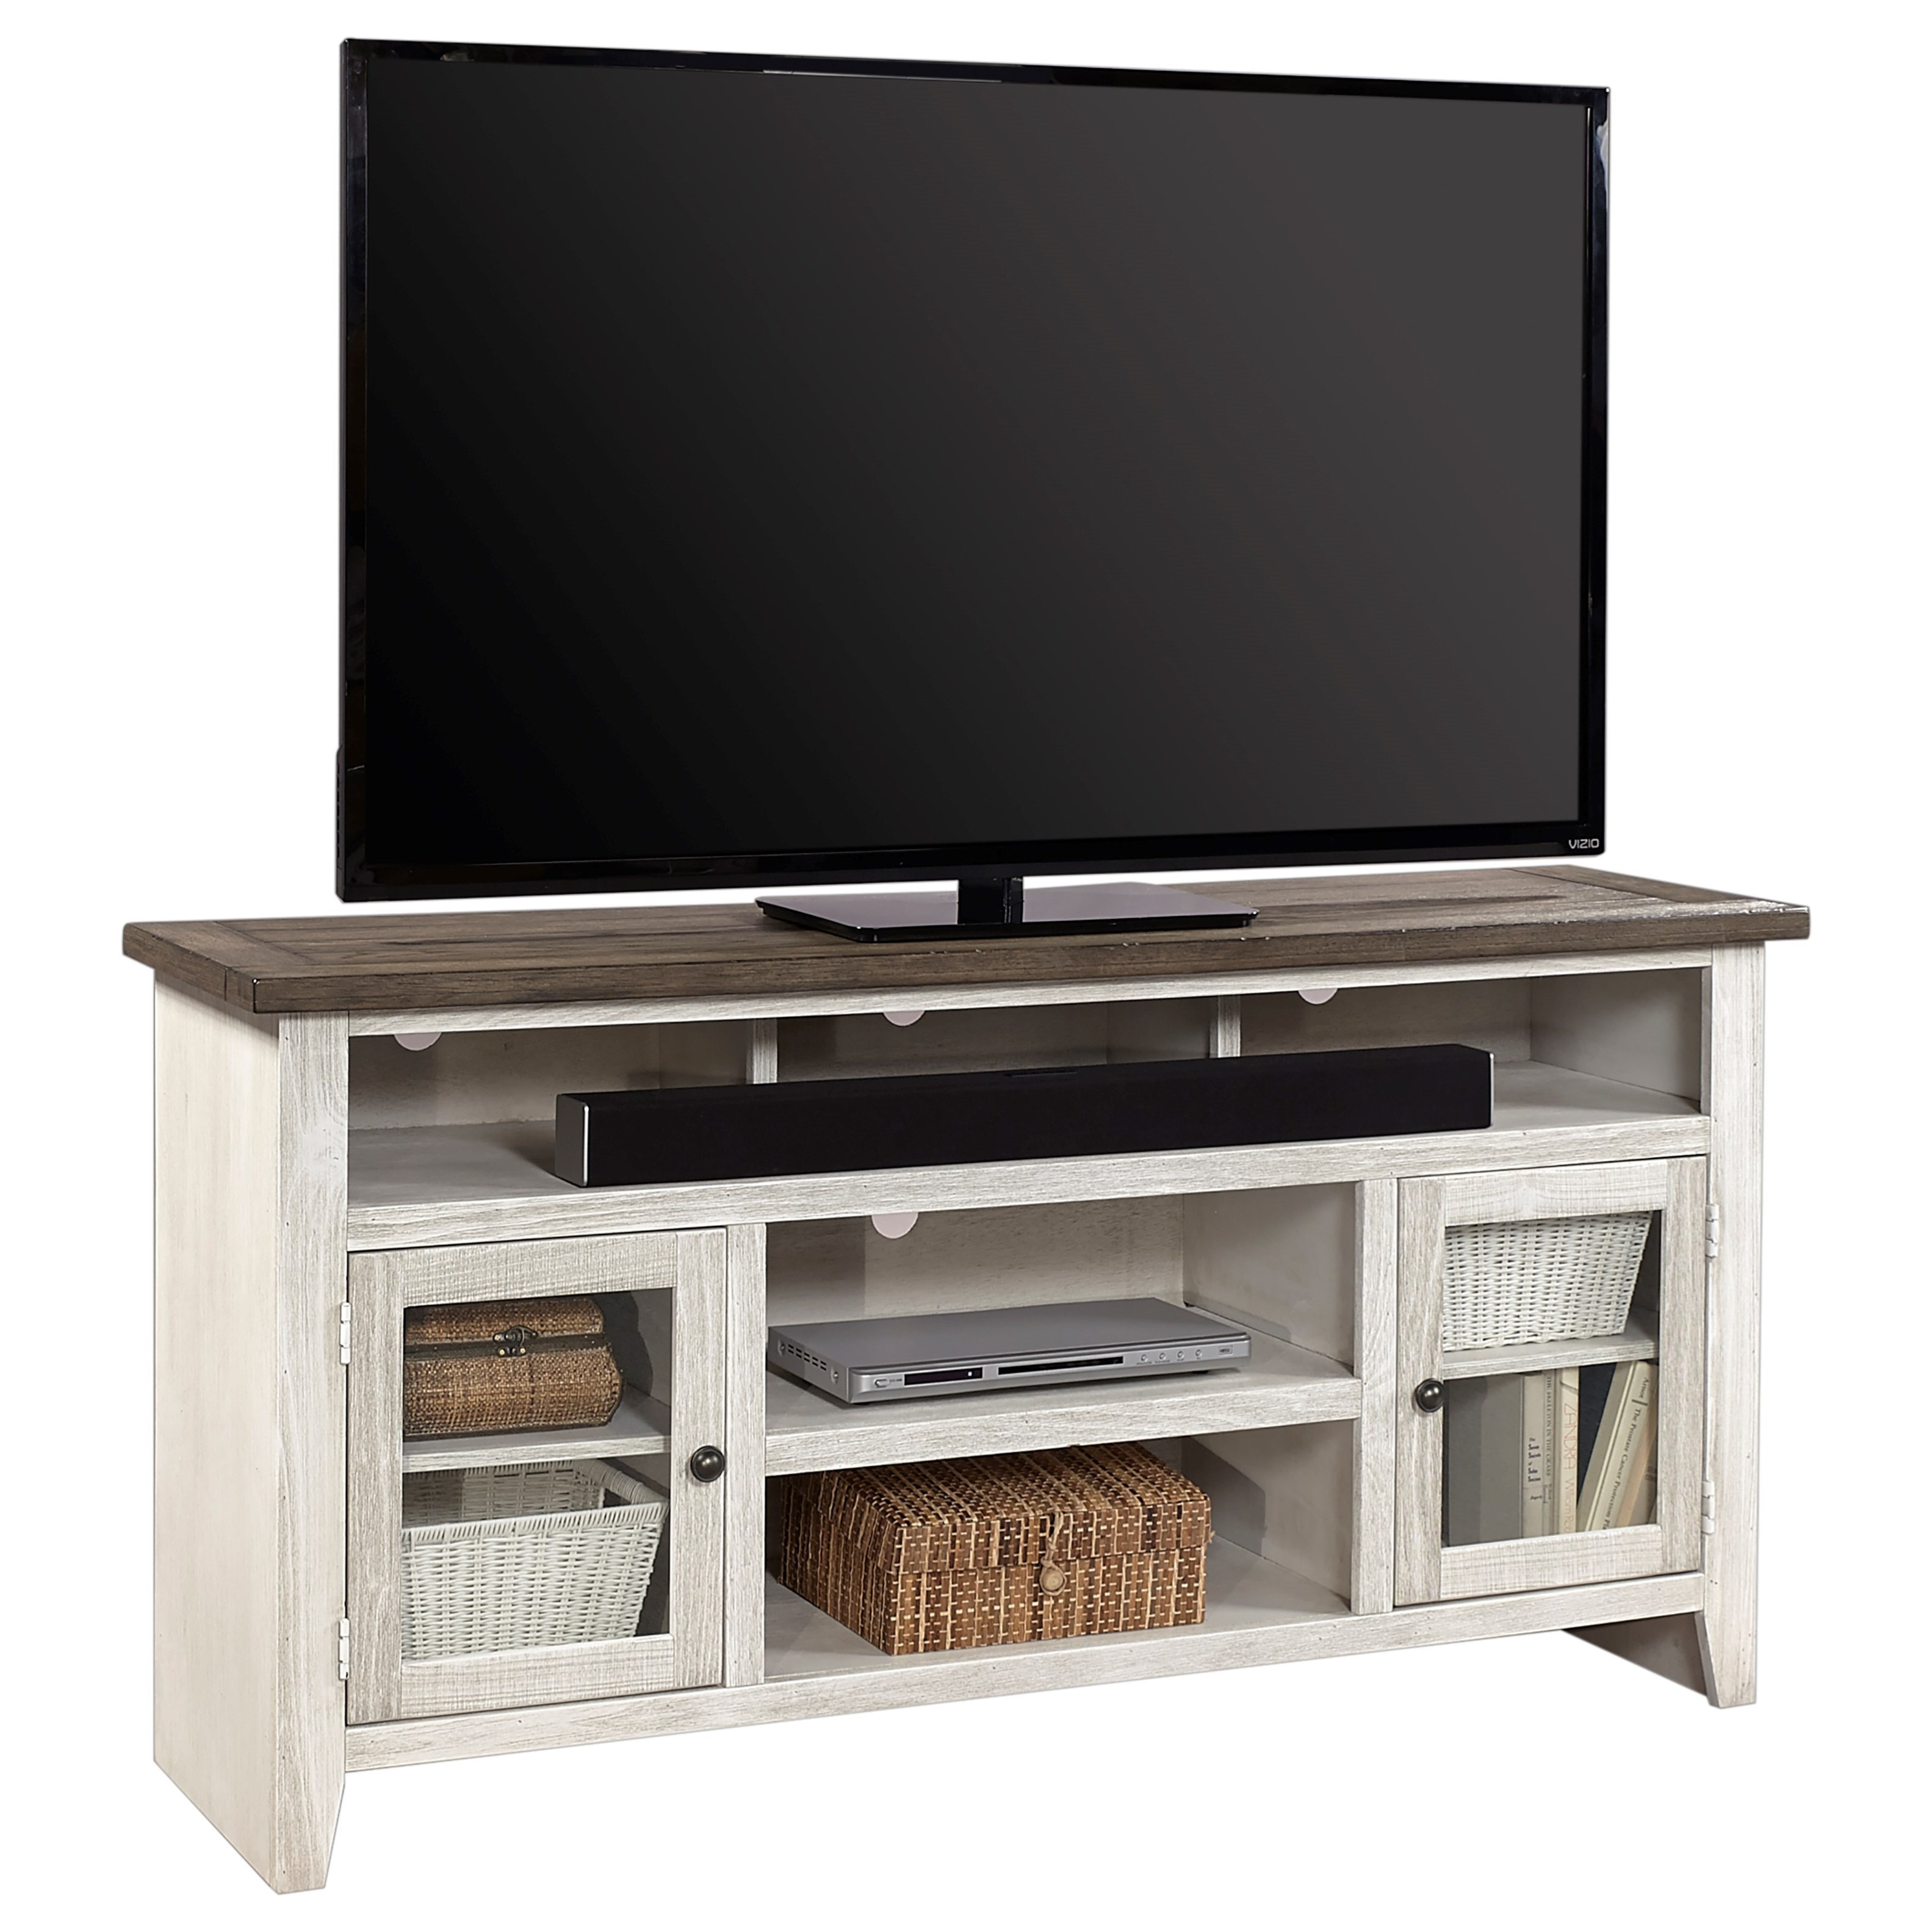 "Eastport 65"" Console by Aspenhome at Stoney Creek Furniture"